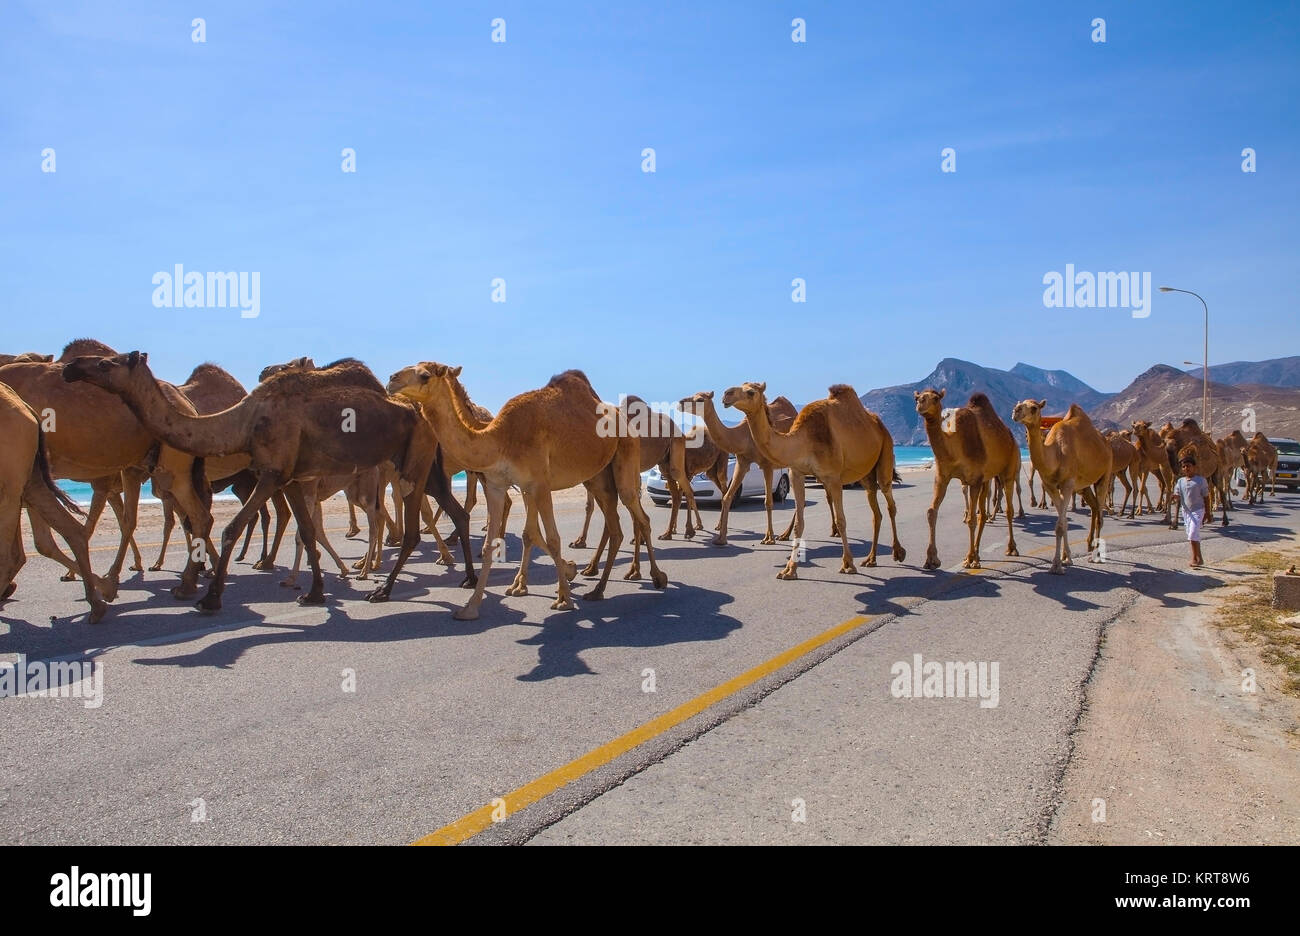 Al Mughsayl, Oman - January 10 : Camels being driven to pastures, accompanied by their owner in the truck. Jan 10, - Stock Image